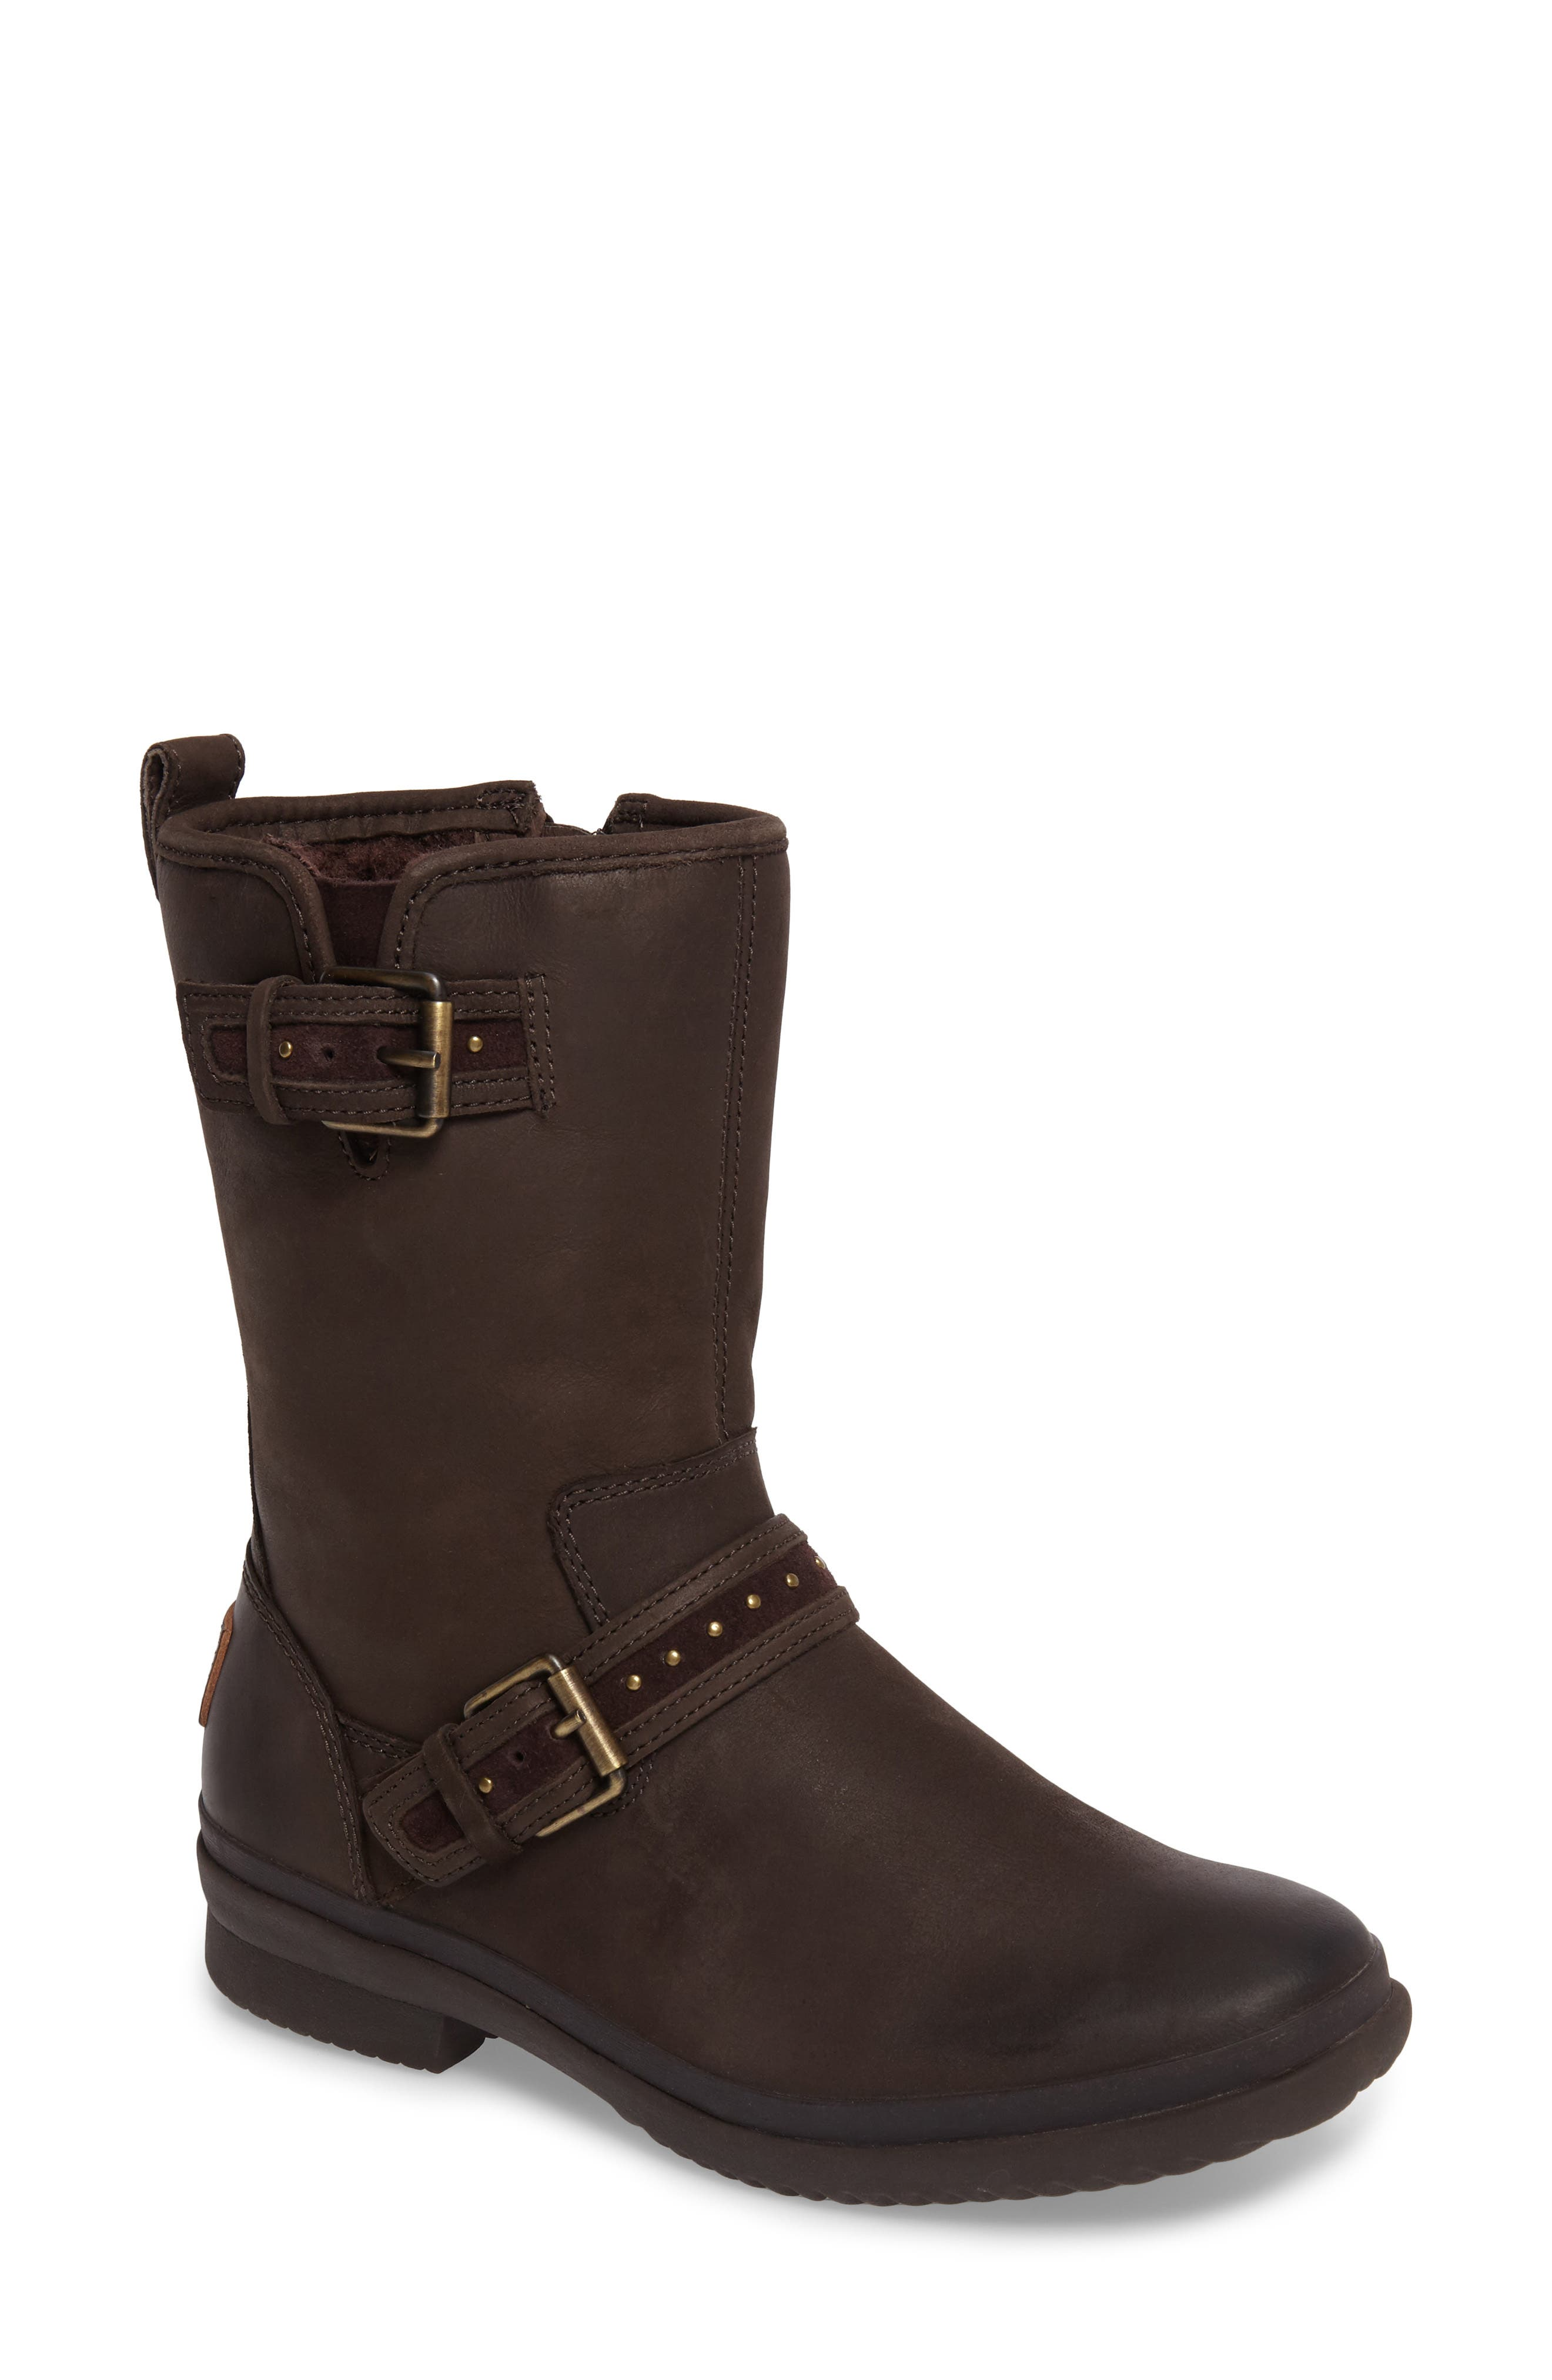 Jenise Waterproof Boot,                         Main,                         color, Stout Leather